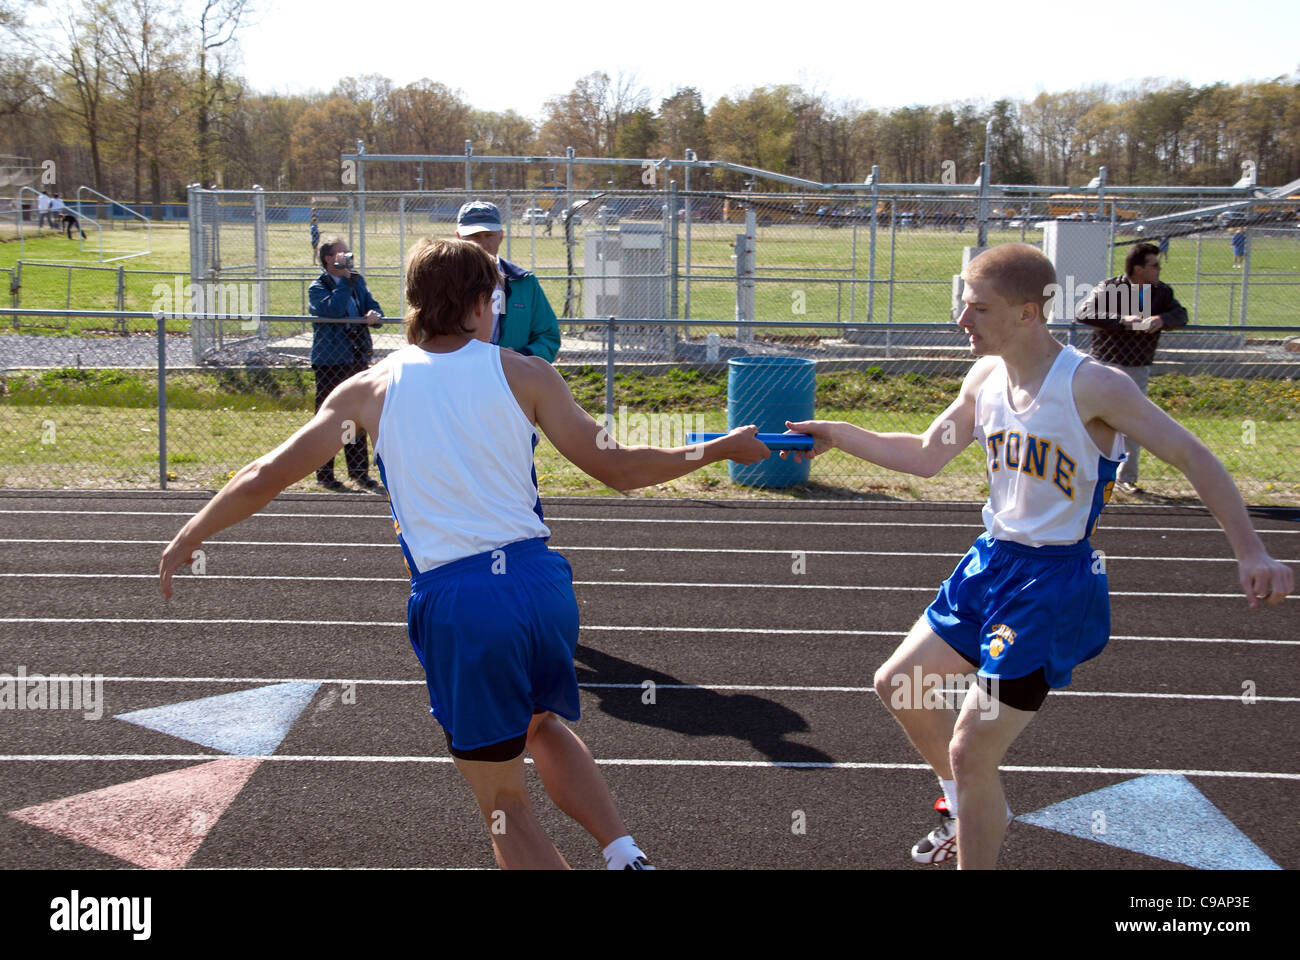 High school track relay race in Waldorf , Maryland - Stock Image